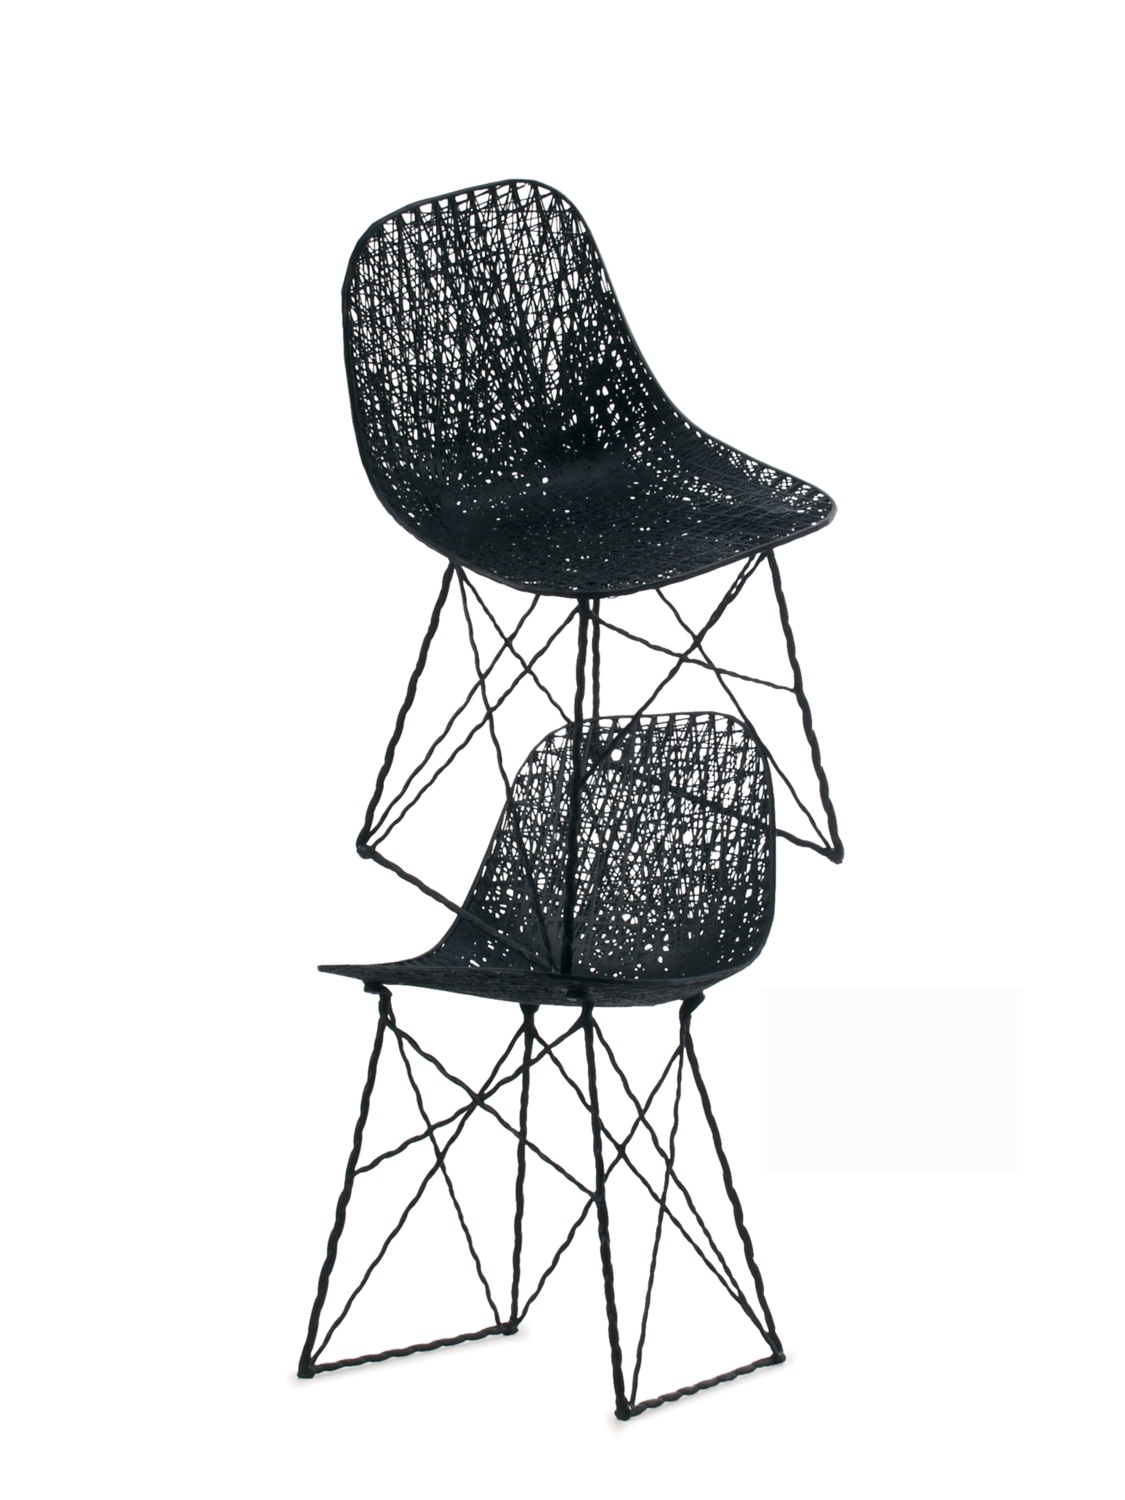 Carbon chair.